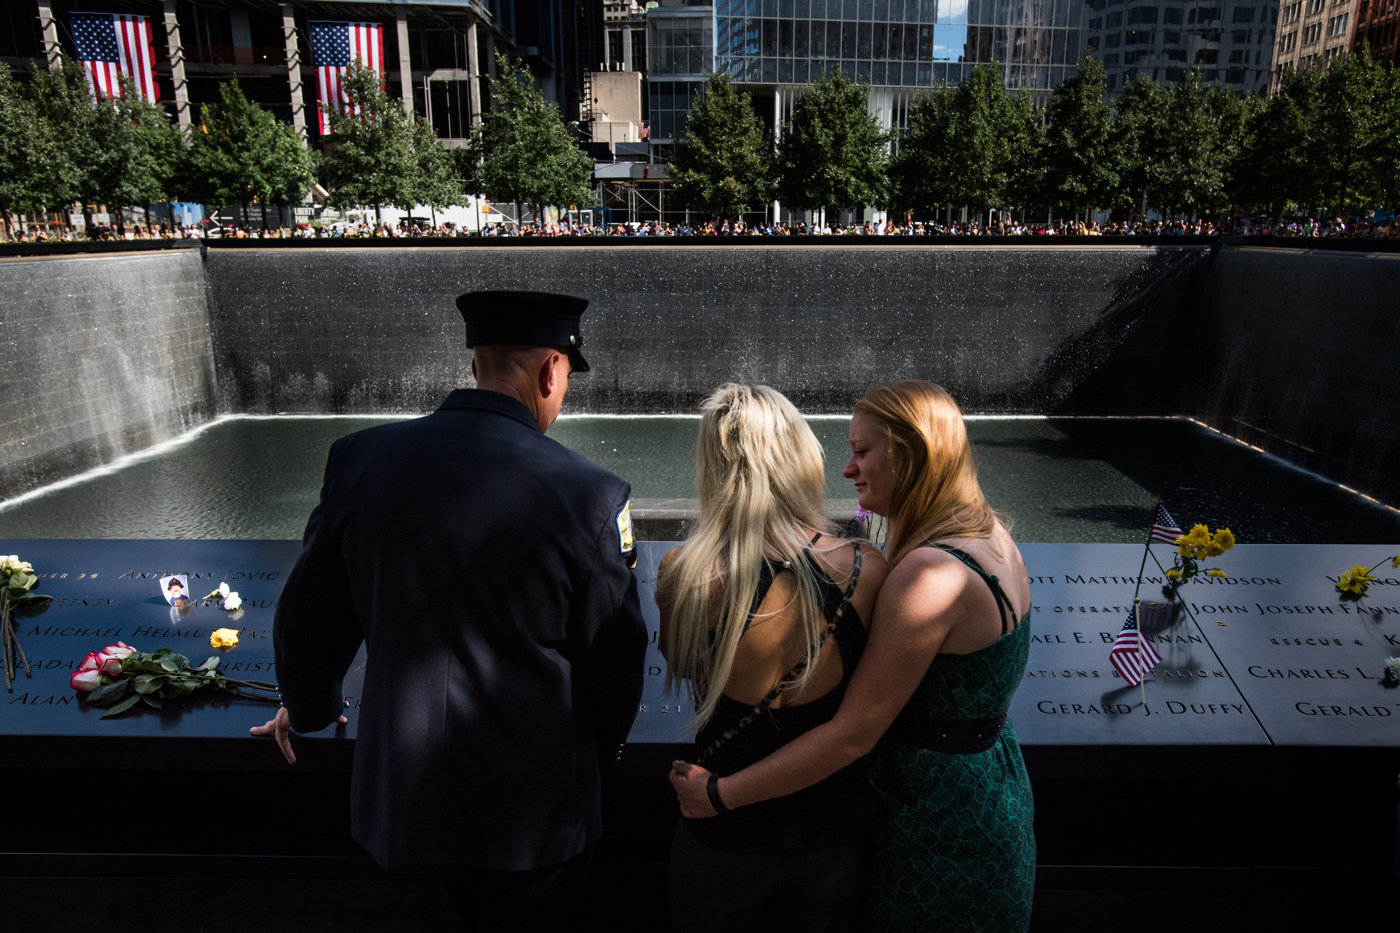 A woman comforts her sister as they gather at the National September 11 Memorial in Manhattan, New York, September 11, 2016, on the 15th anniversary of the terrorist attacks on September 11, 2001.